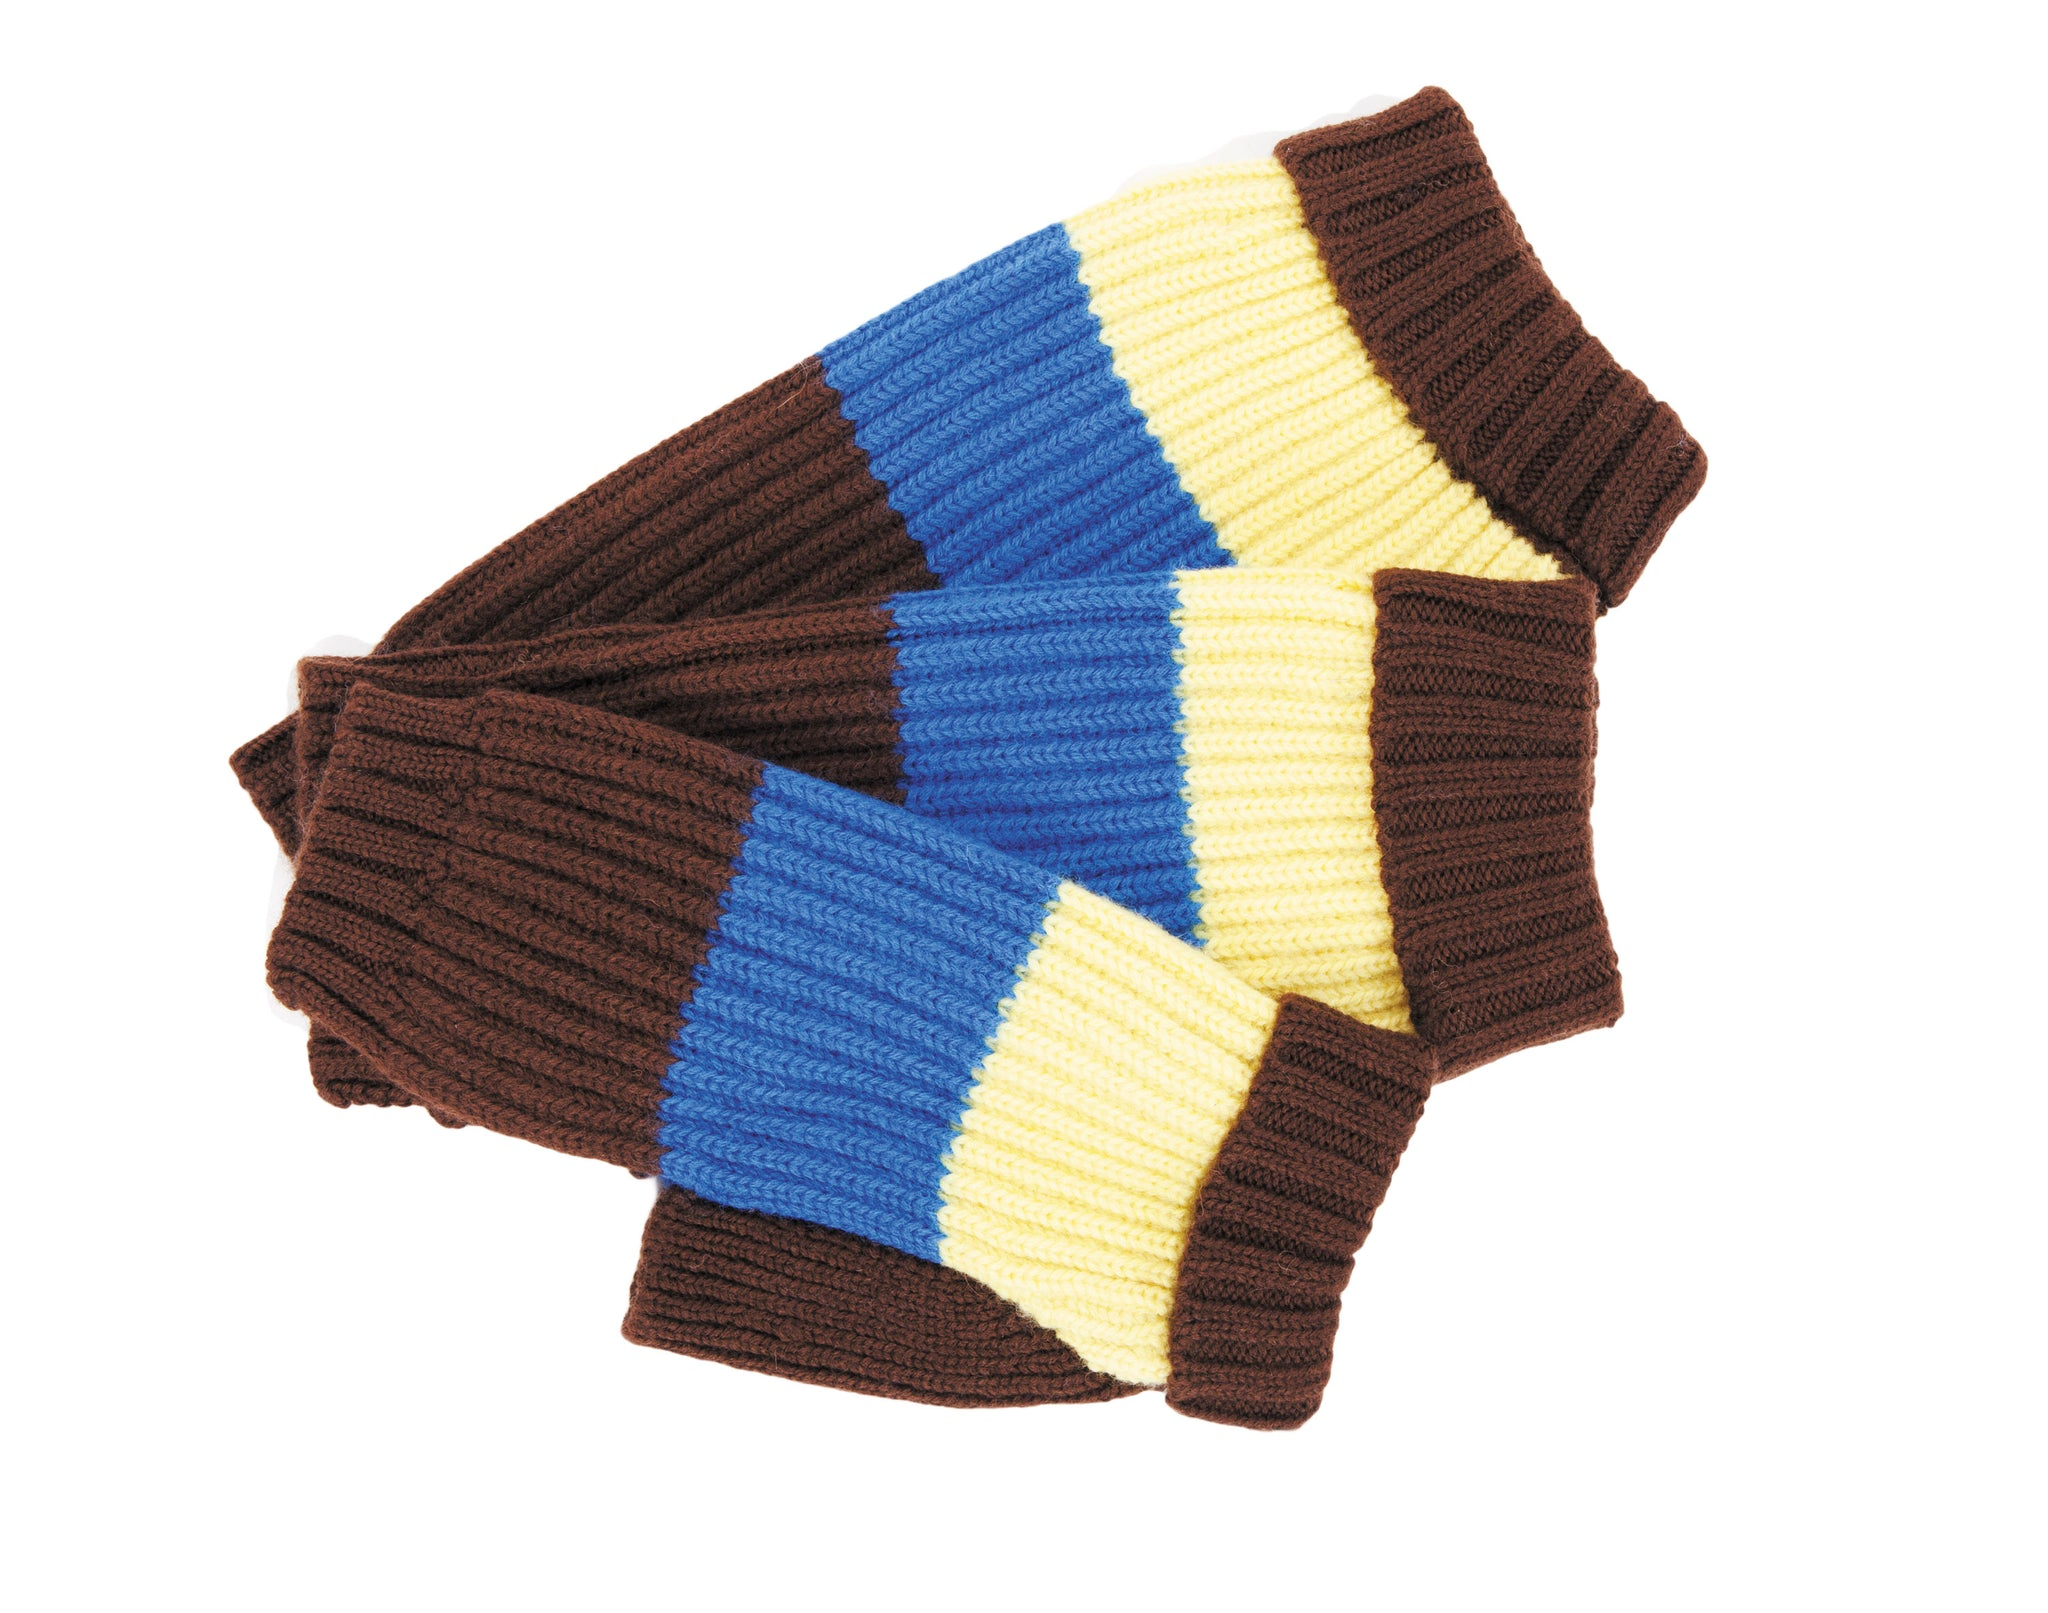 Wool Dog Sweater - Deer Valley - Brown,Blue & Yellow